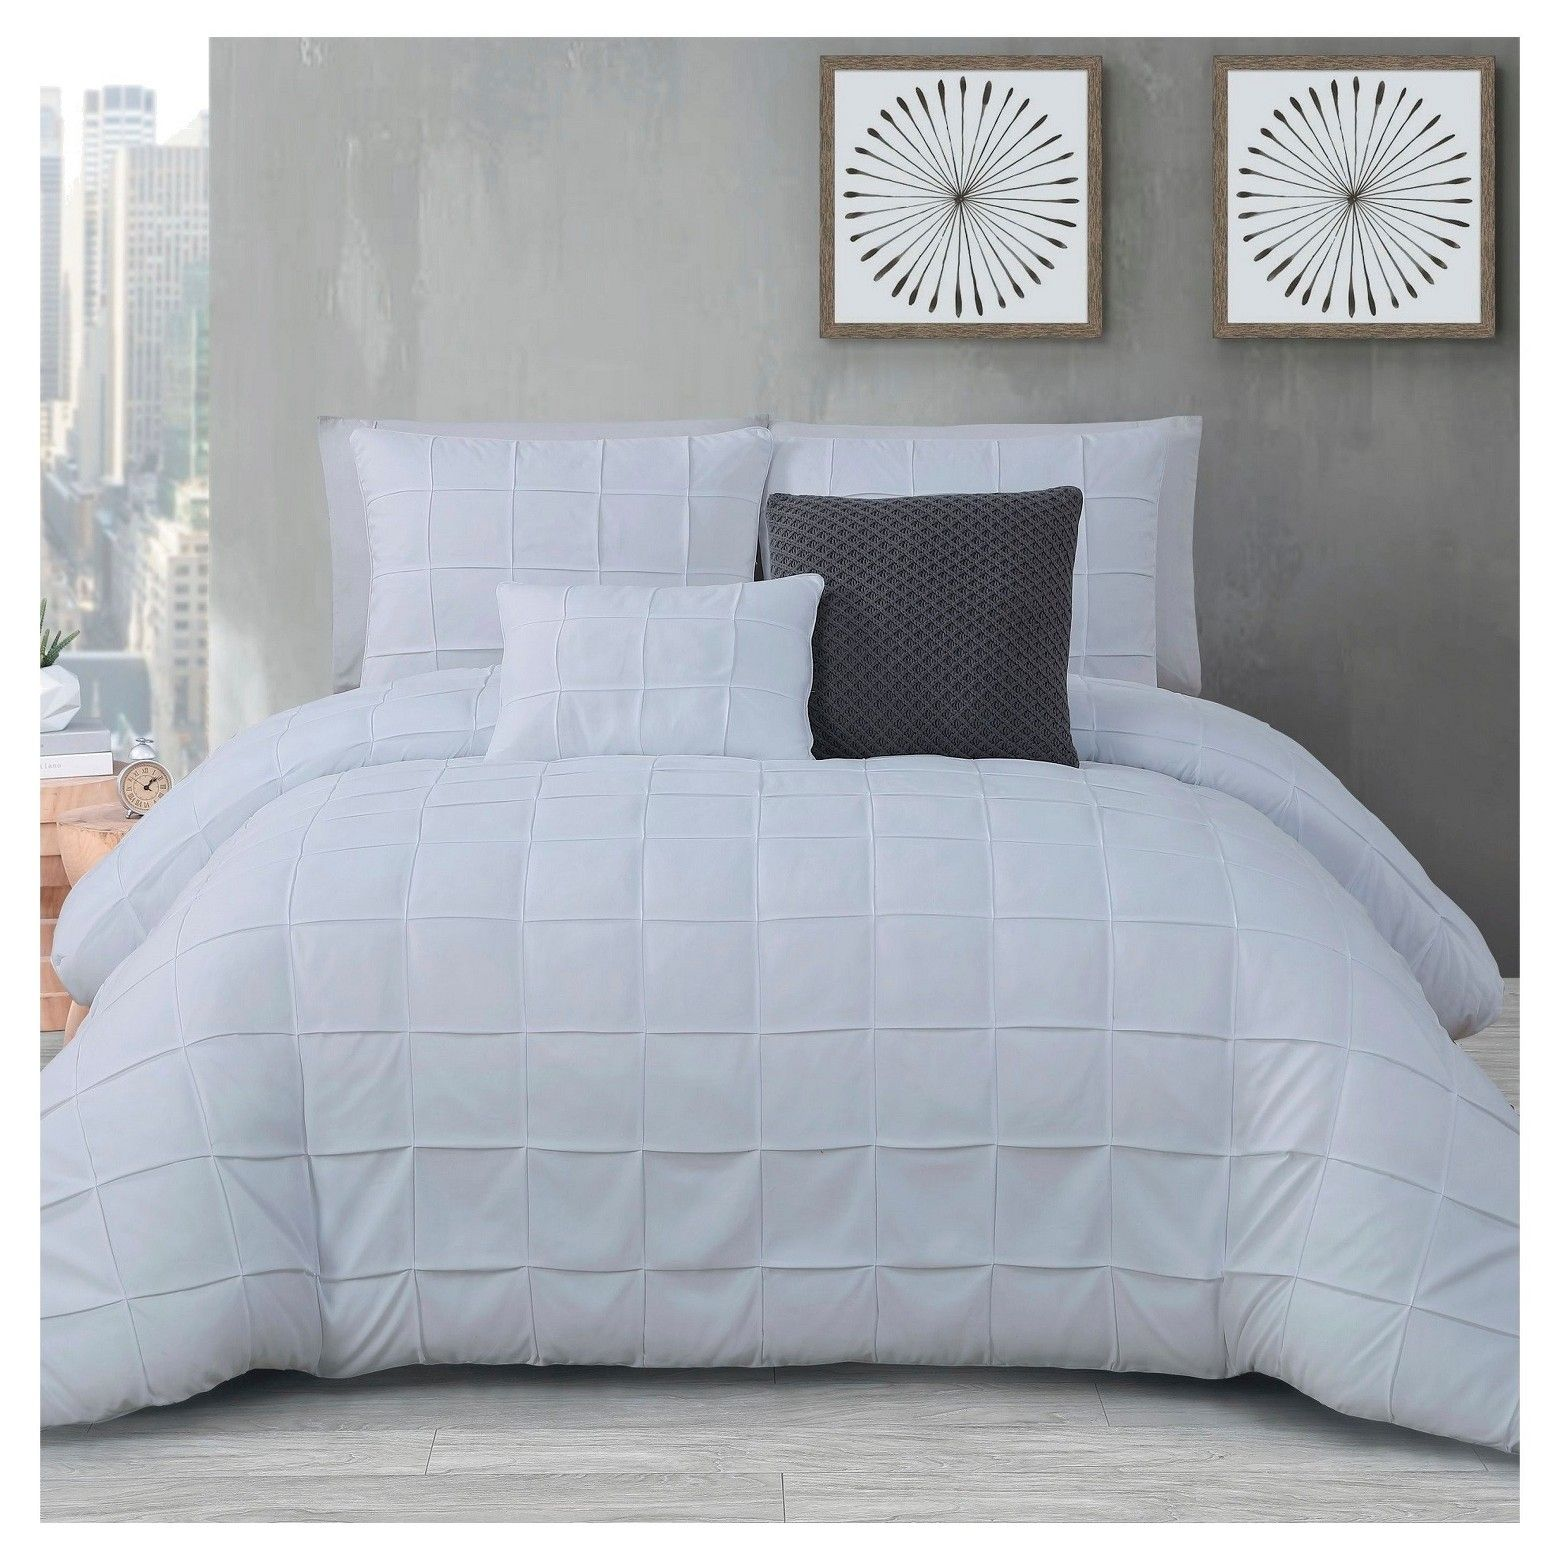 shop target for white comforters you will love at great